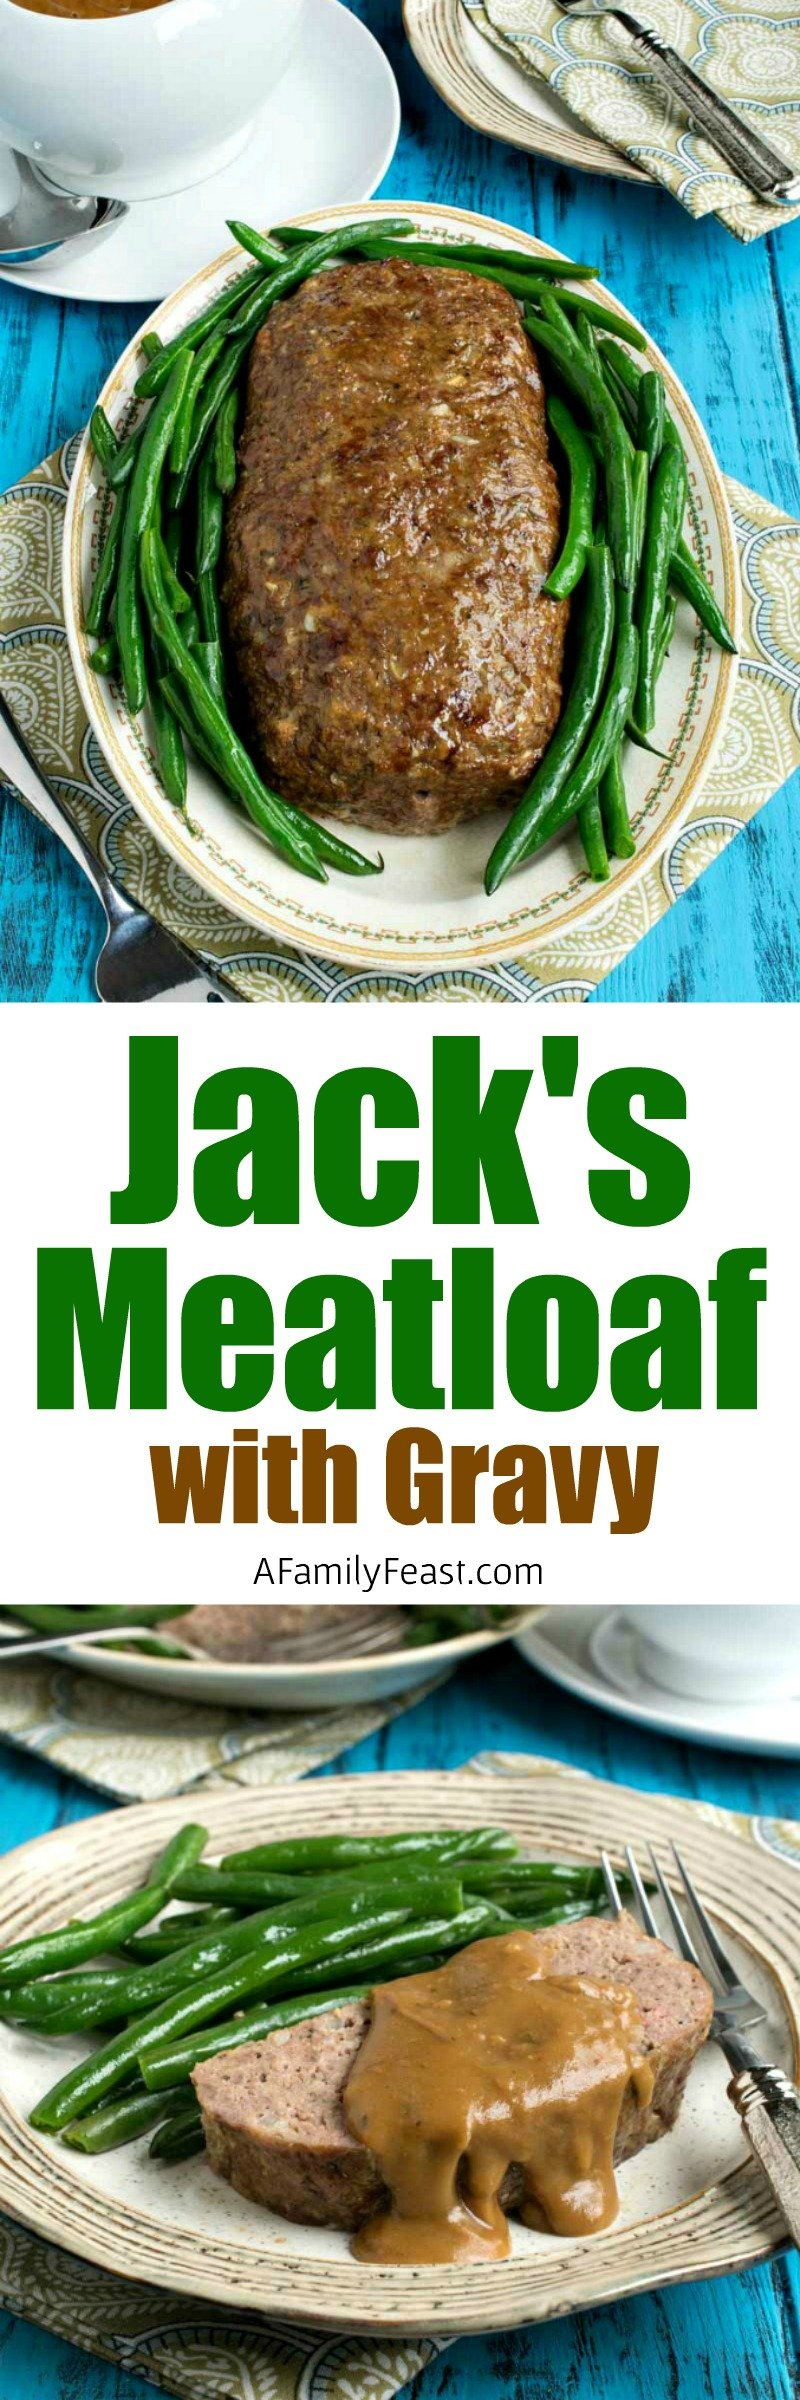 My husband Jack's Meatloaf with Gravy - An easy recipe for moist, delicious meatloaf with gravy. A comfort food classic!